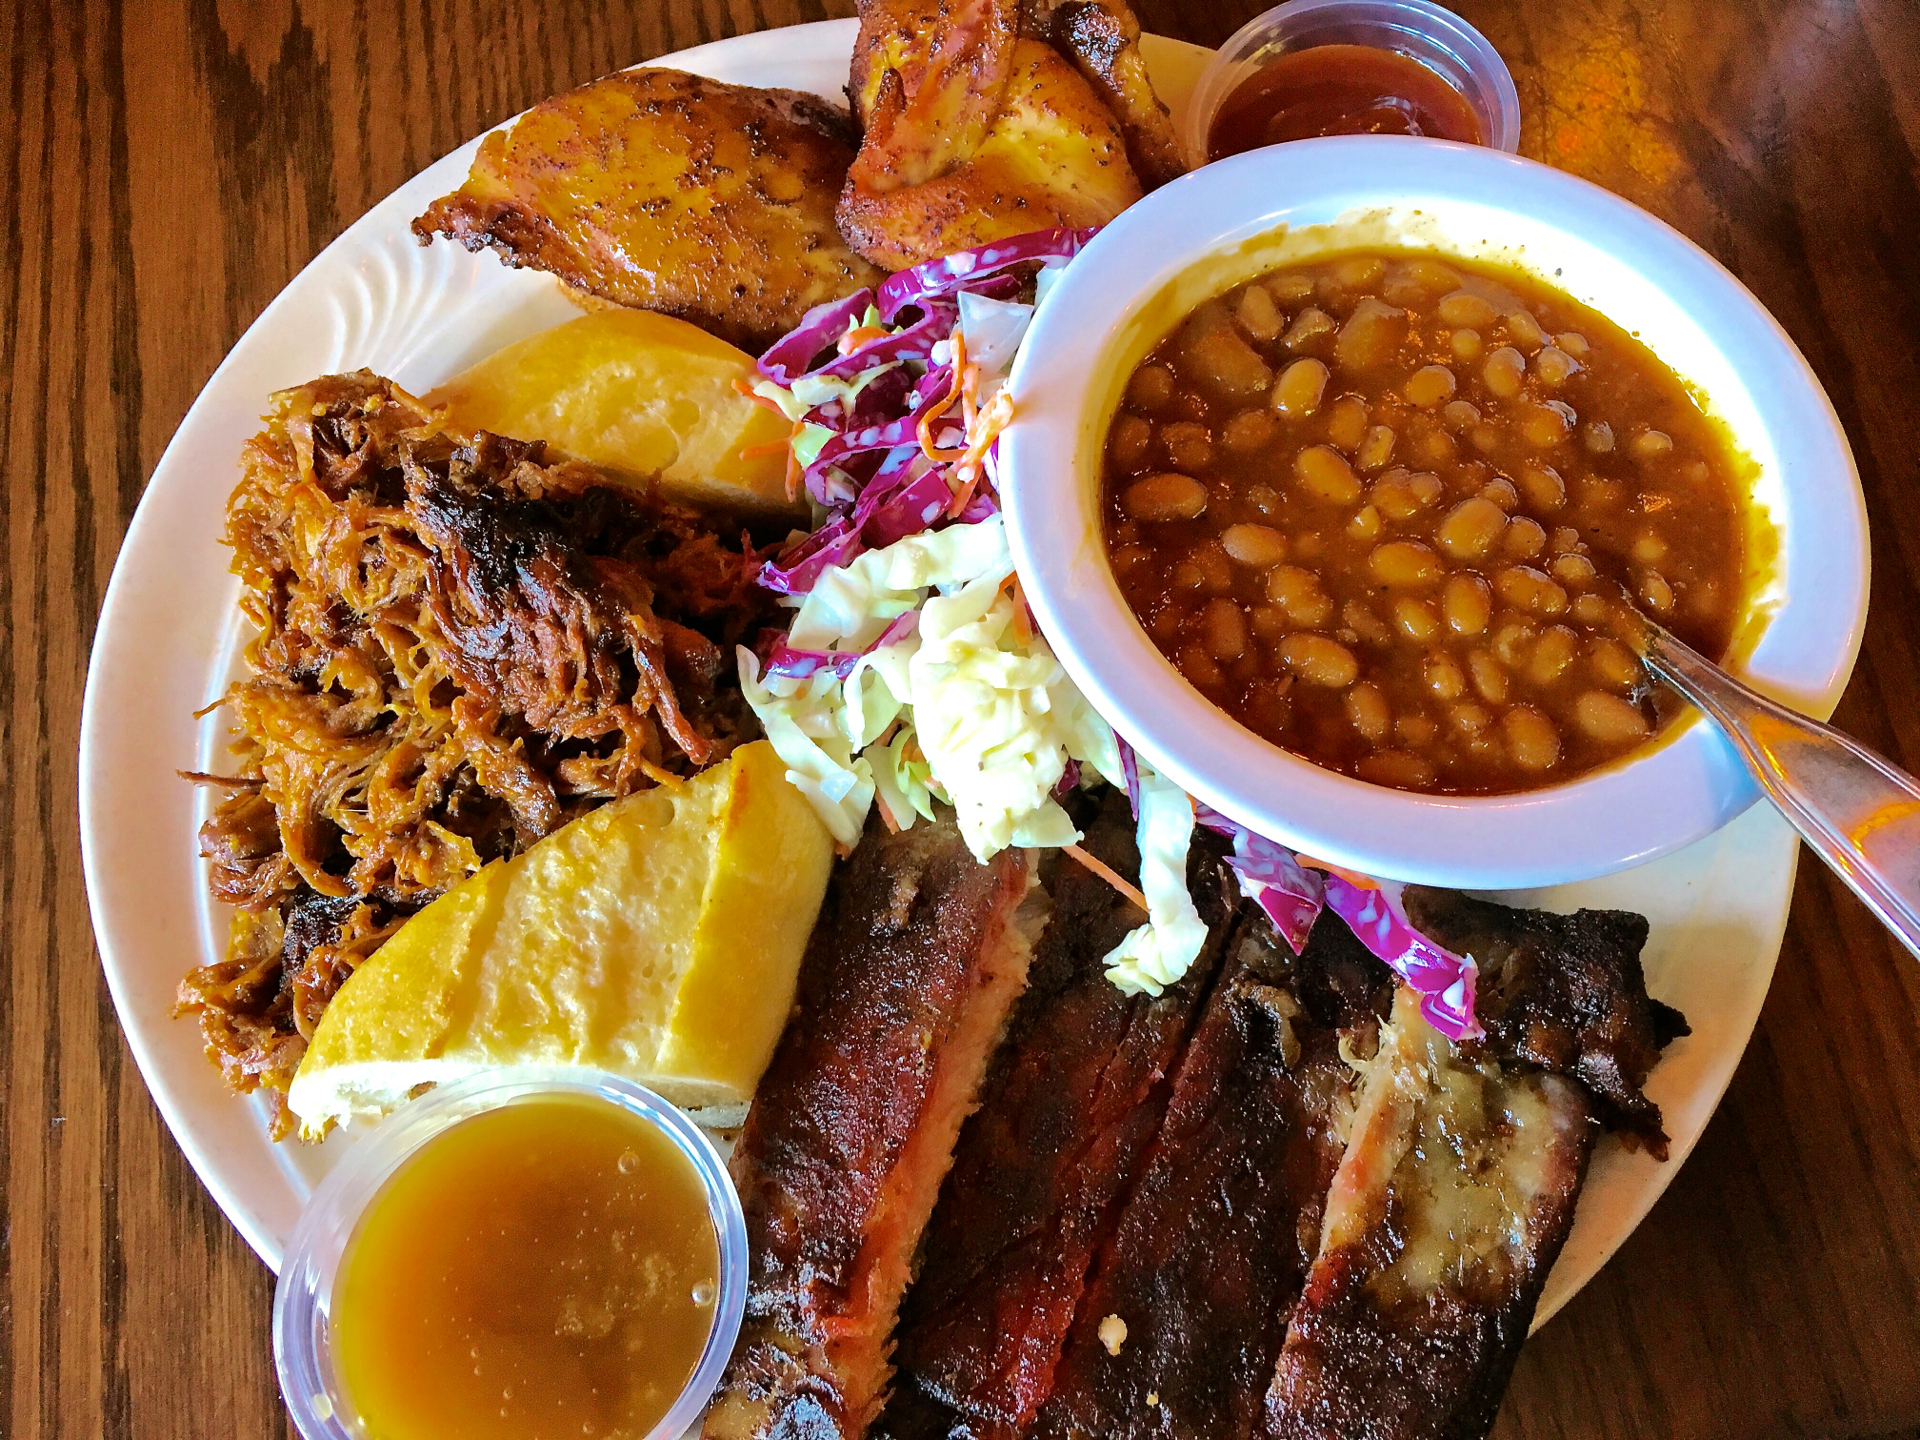 A combination plate with ribs, roasted chicken and pulled pork at The Cats.